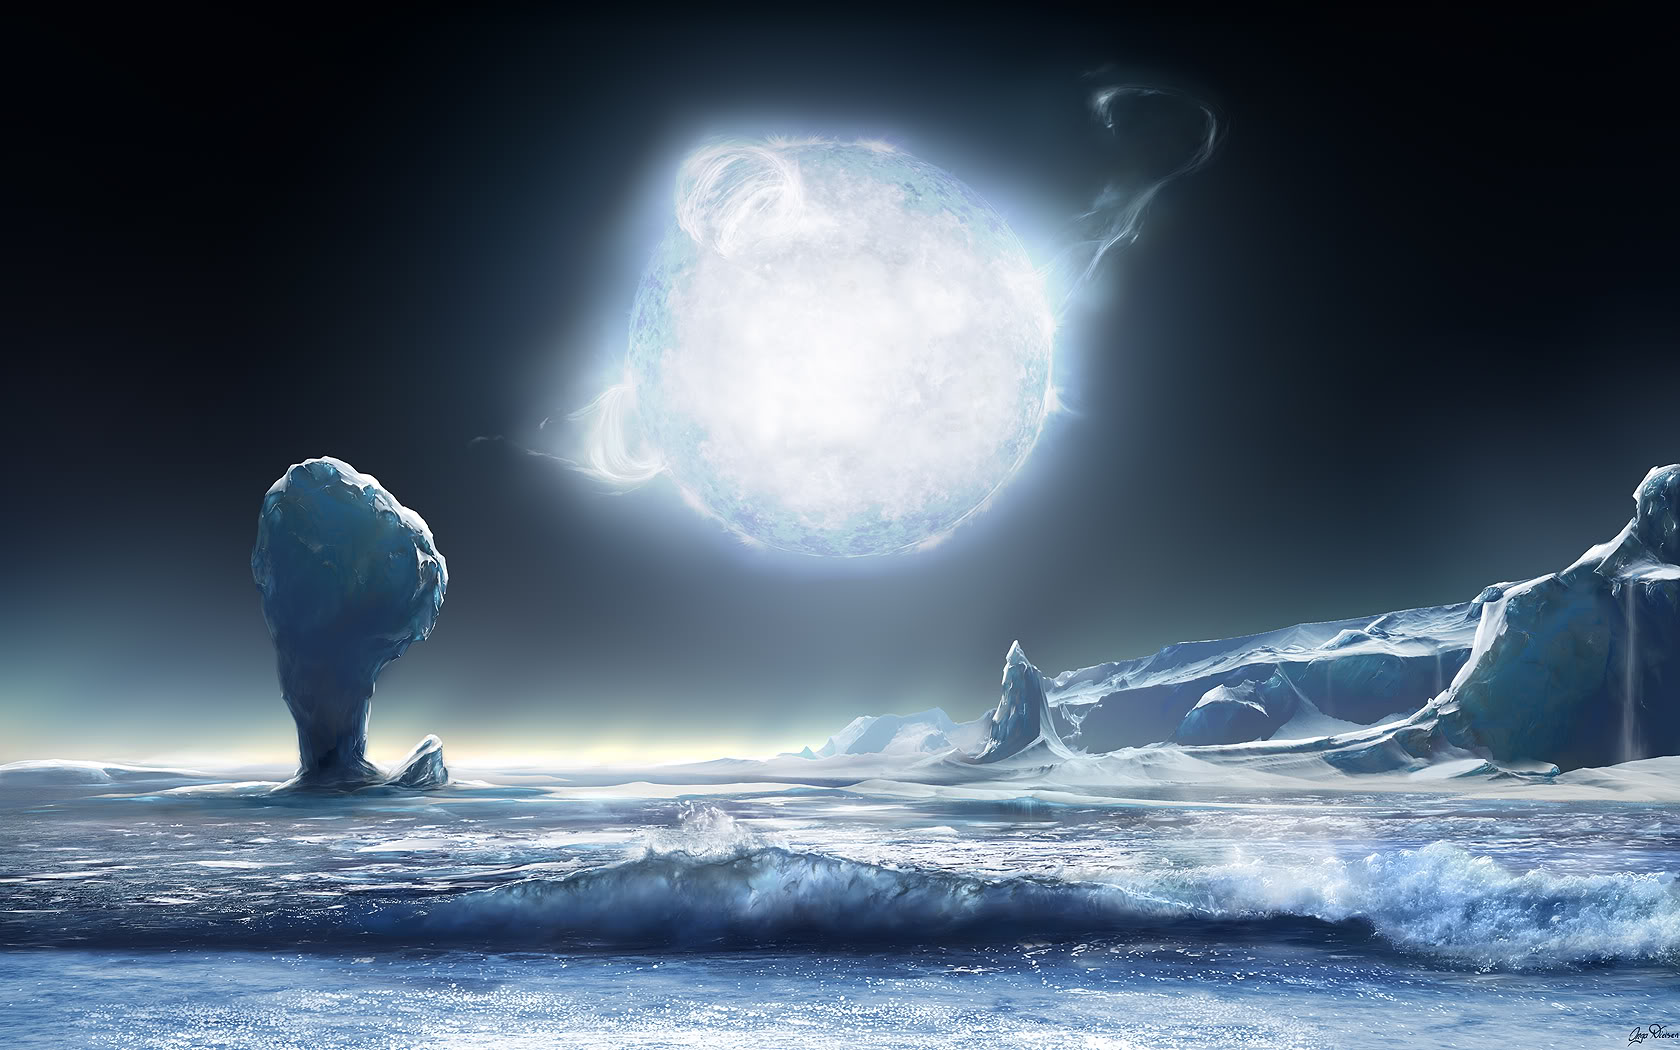 Download High quality Cold Fire Science Fiction (Sci-fi) wallpaper ...